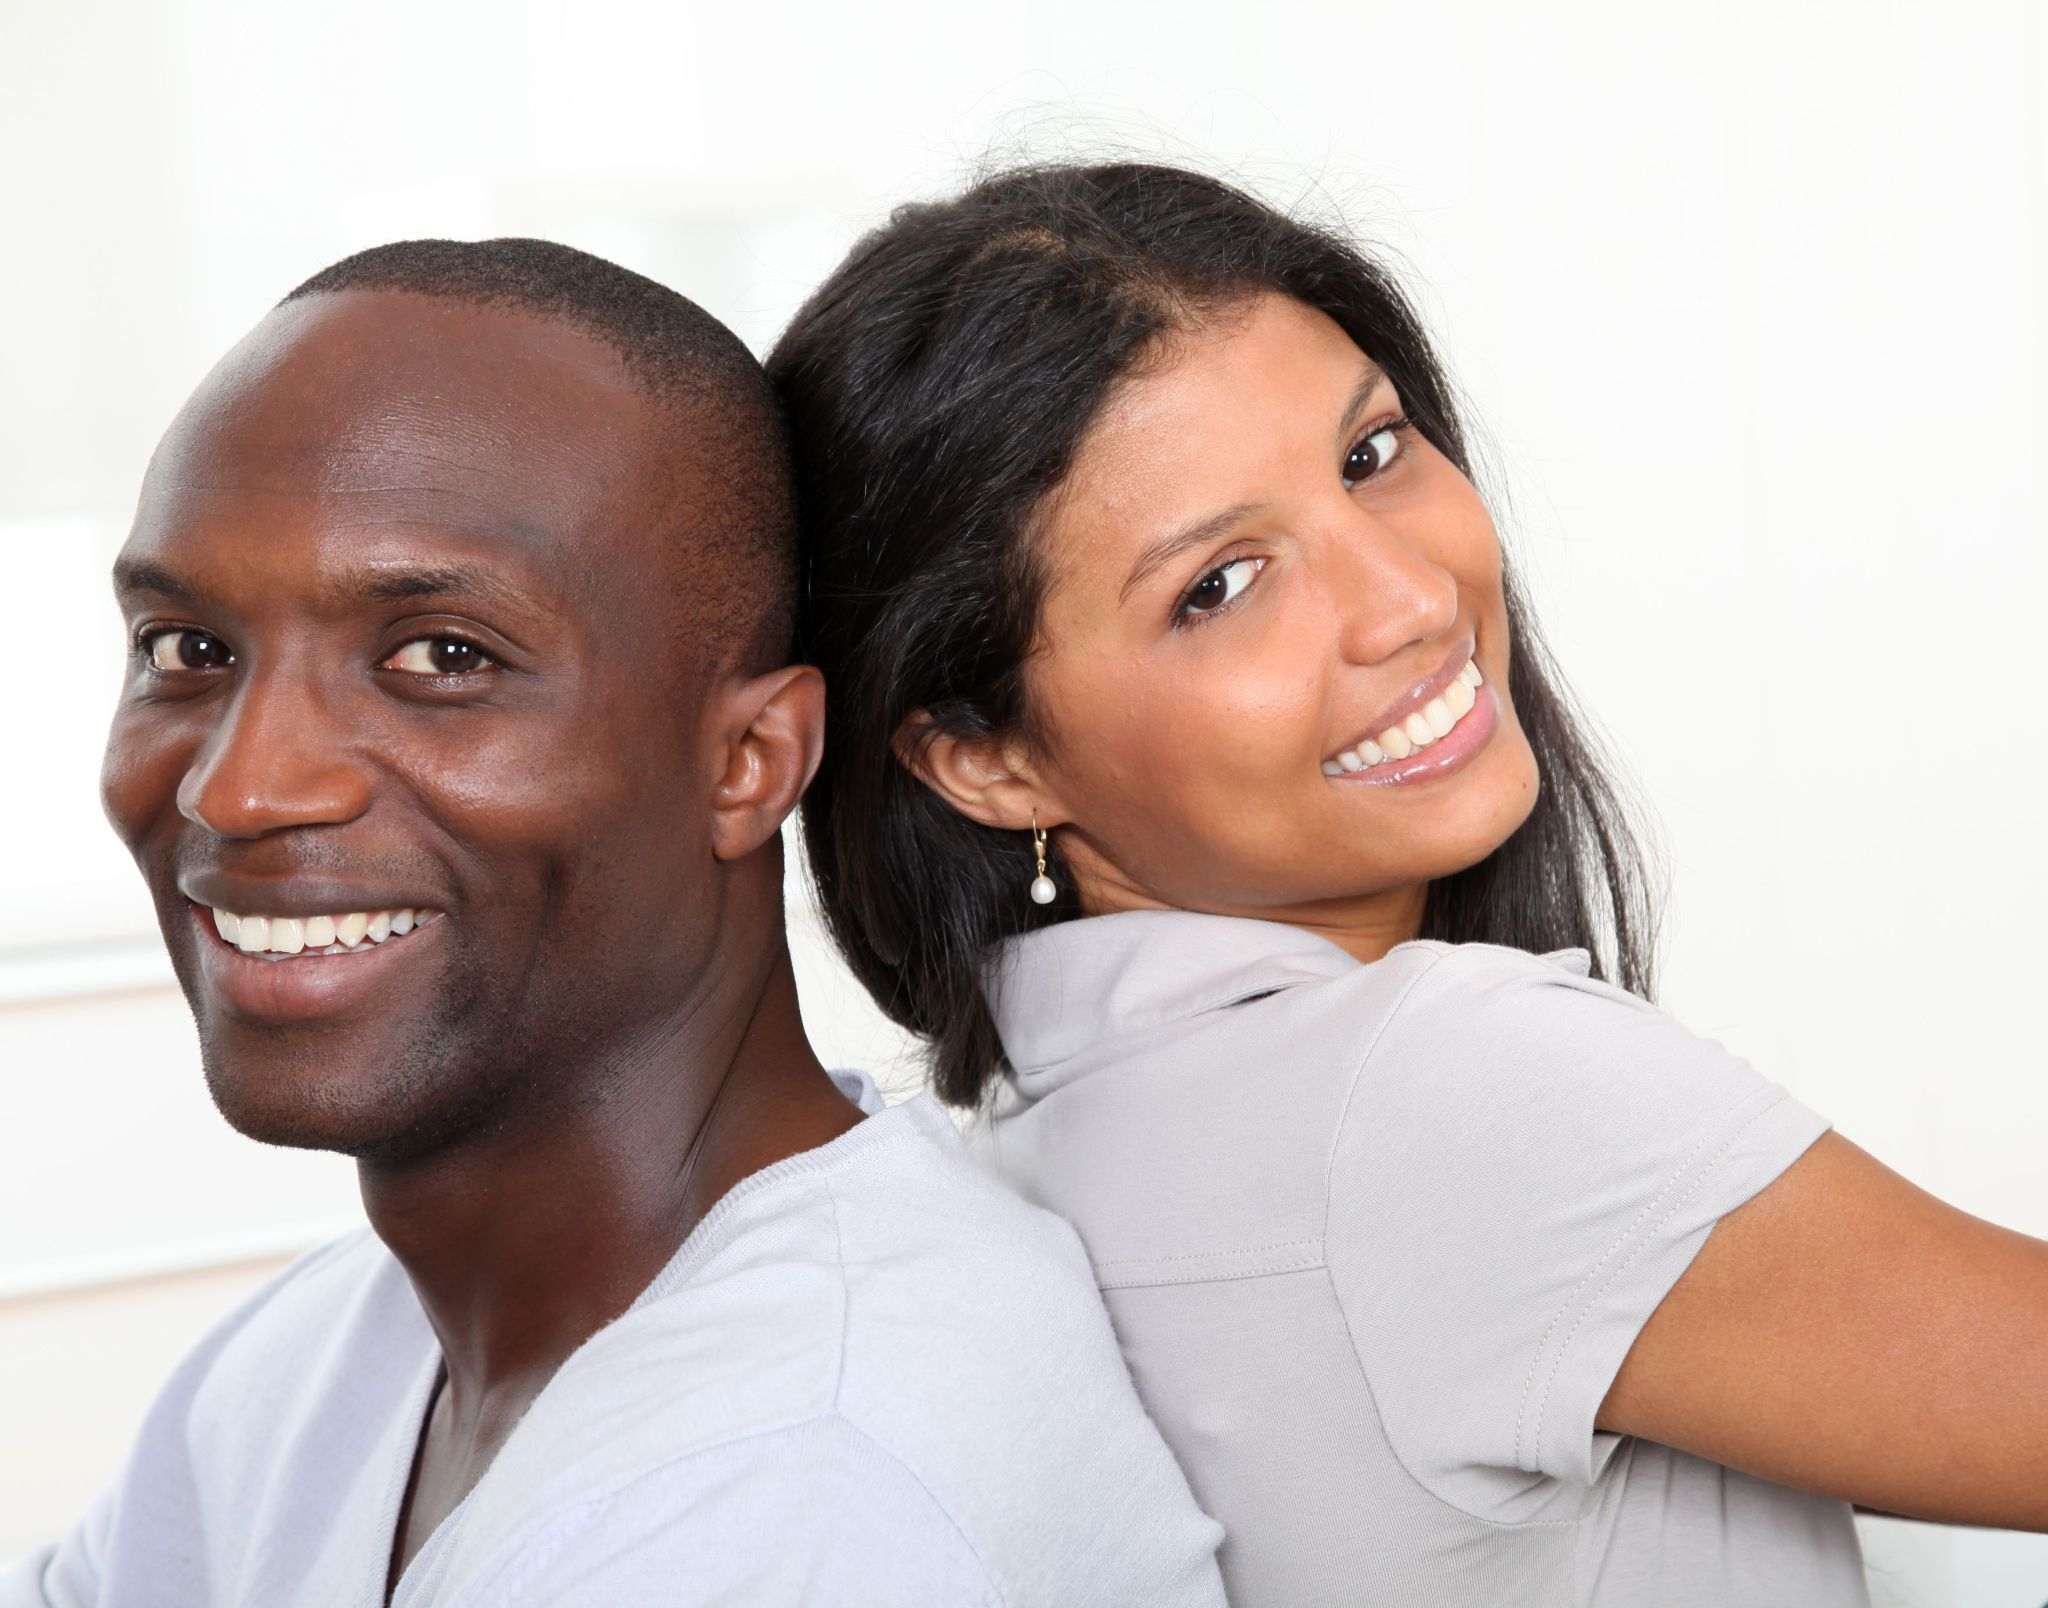 Invisalign in Mount Laurel